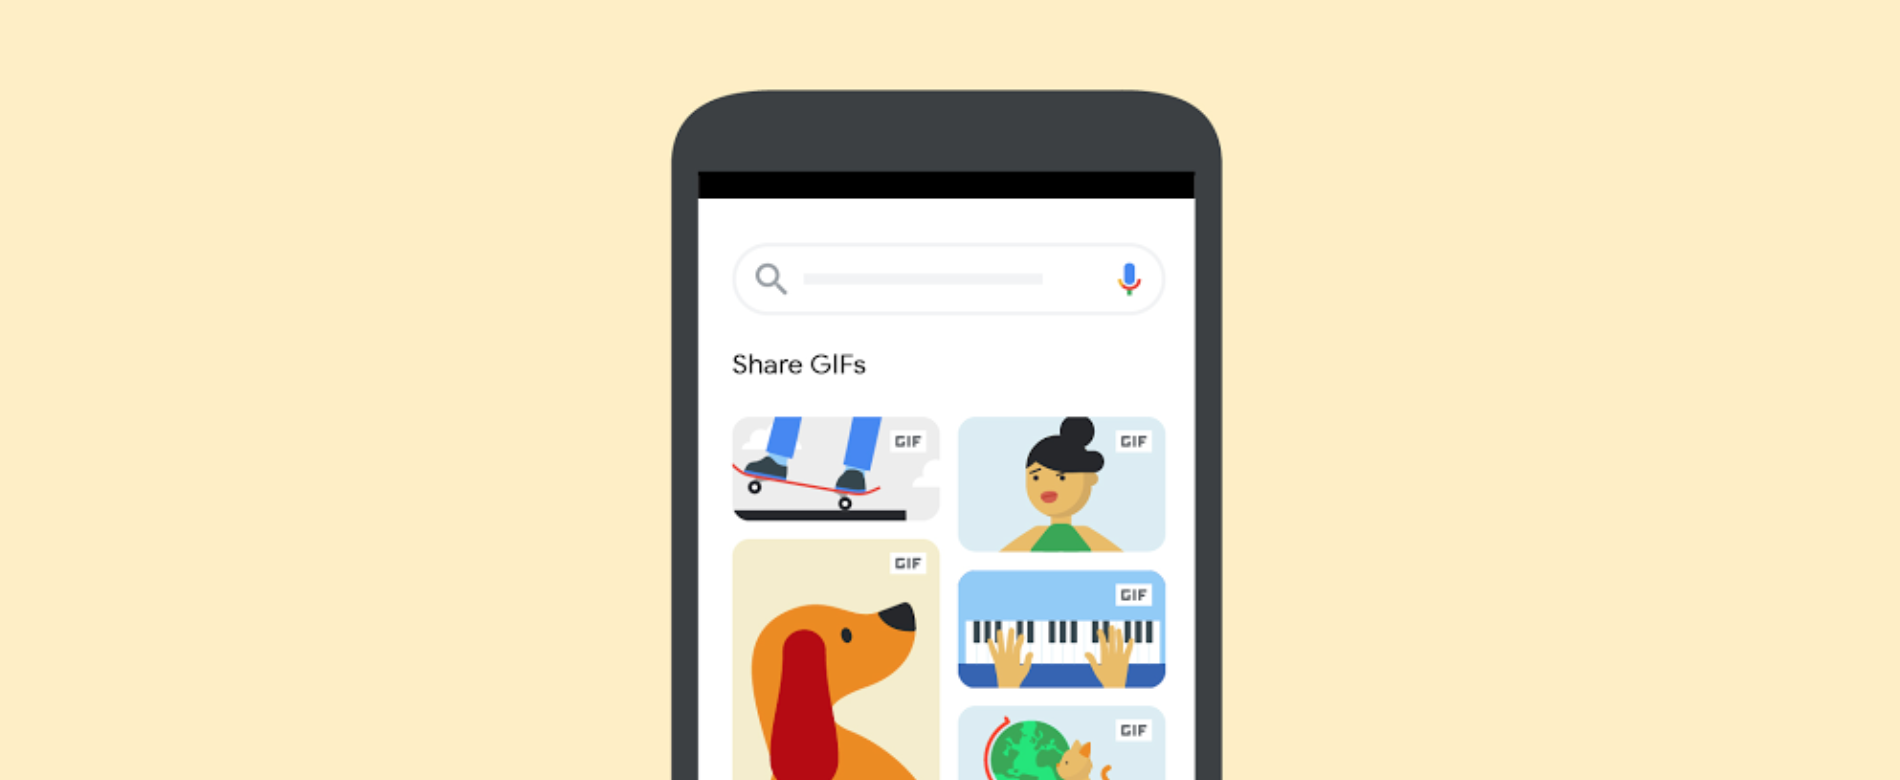 google-adds-shareable-gifs-to-image-search-results-via-@mattgsouthern